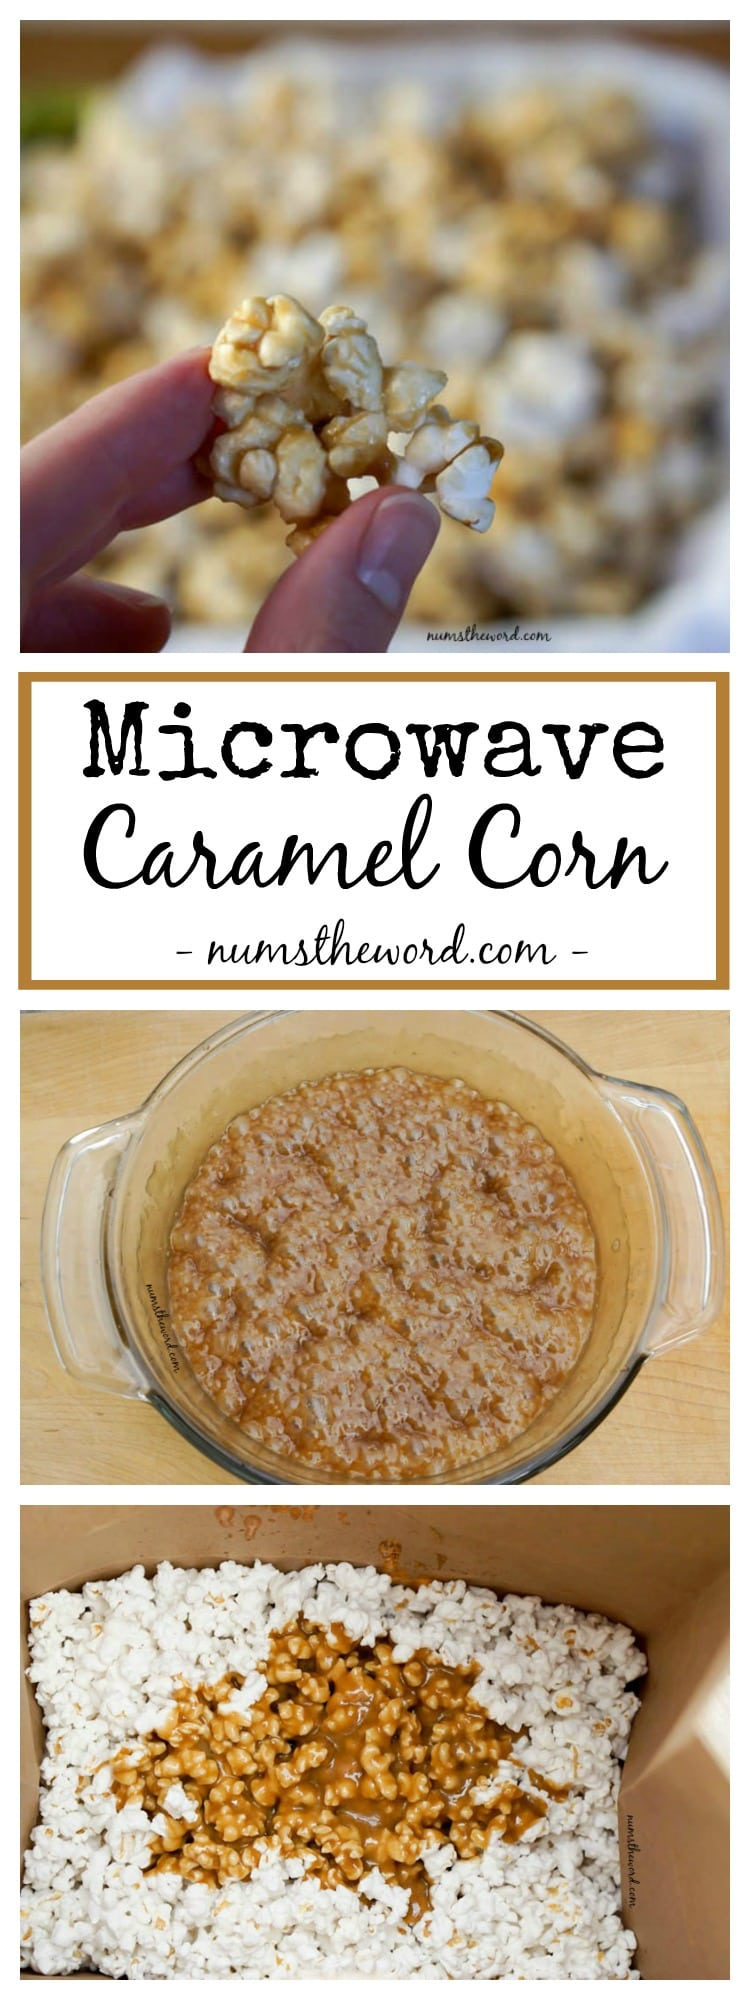 Microwave Caramel Corn is officially your new favorite go to caramel ...